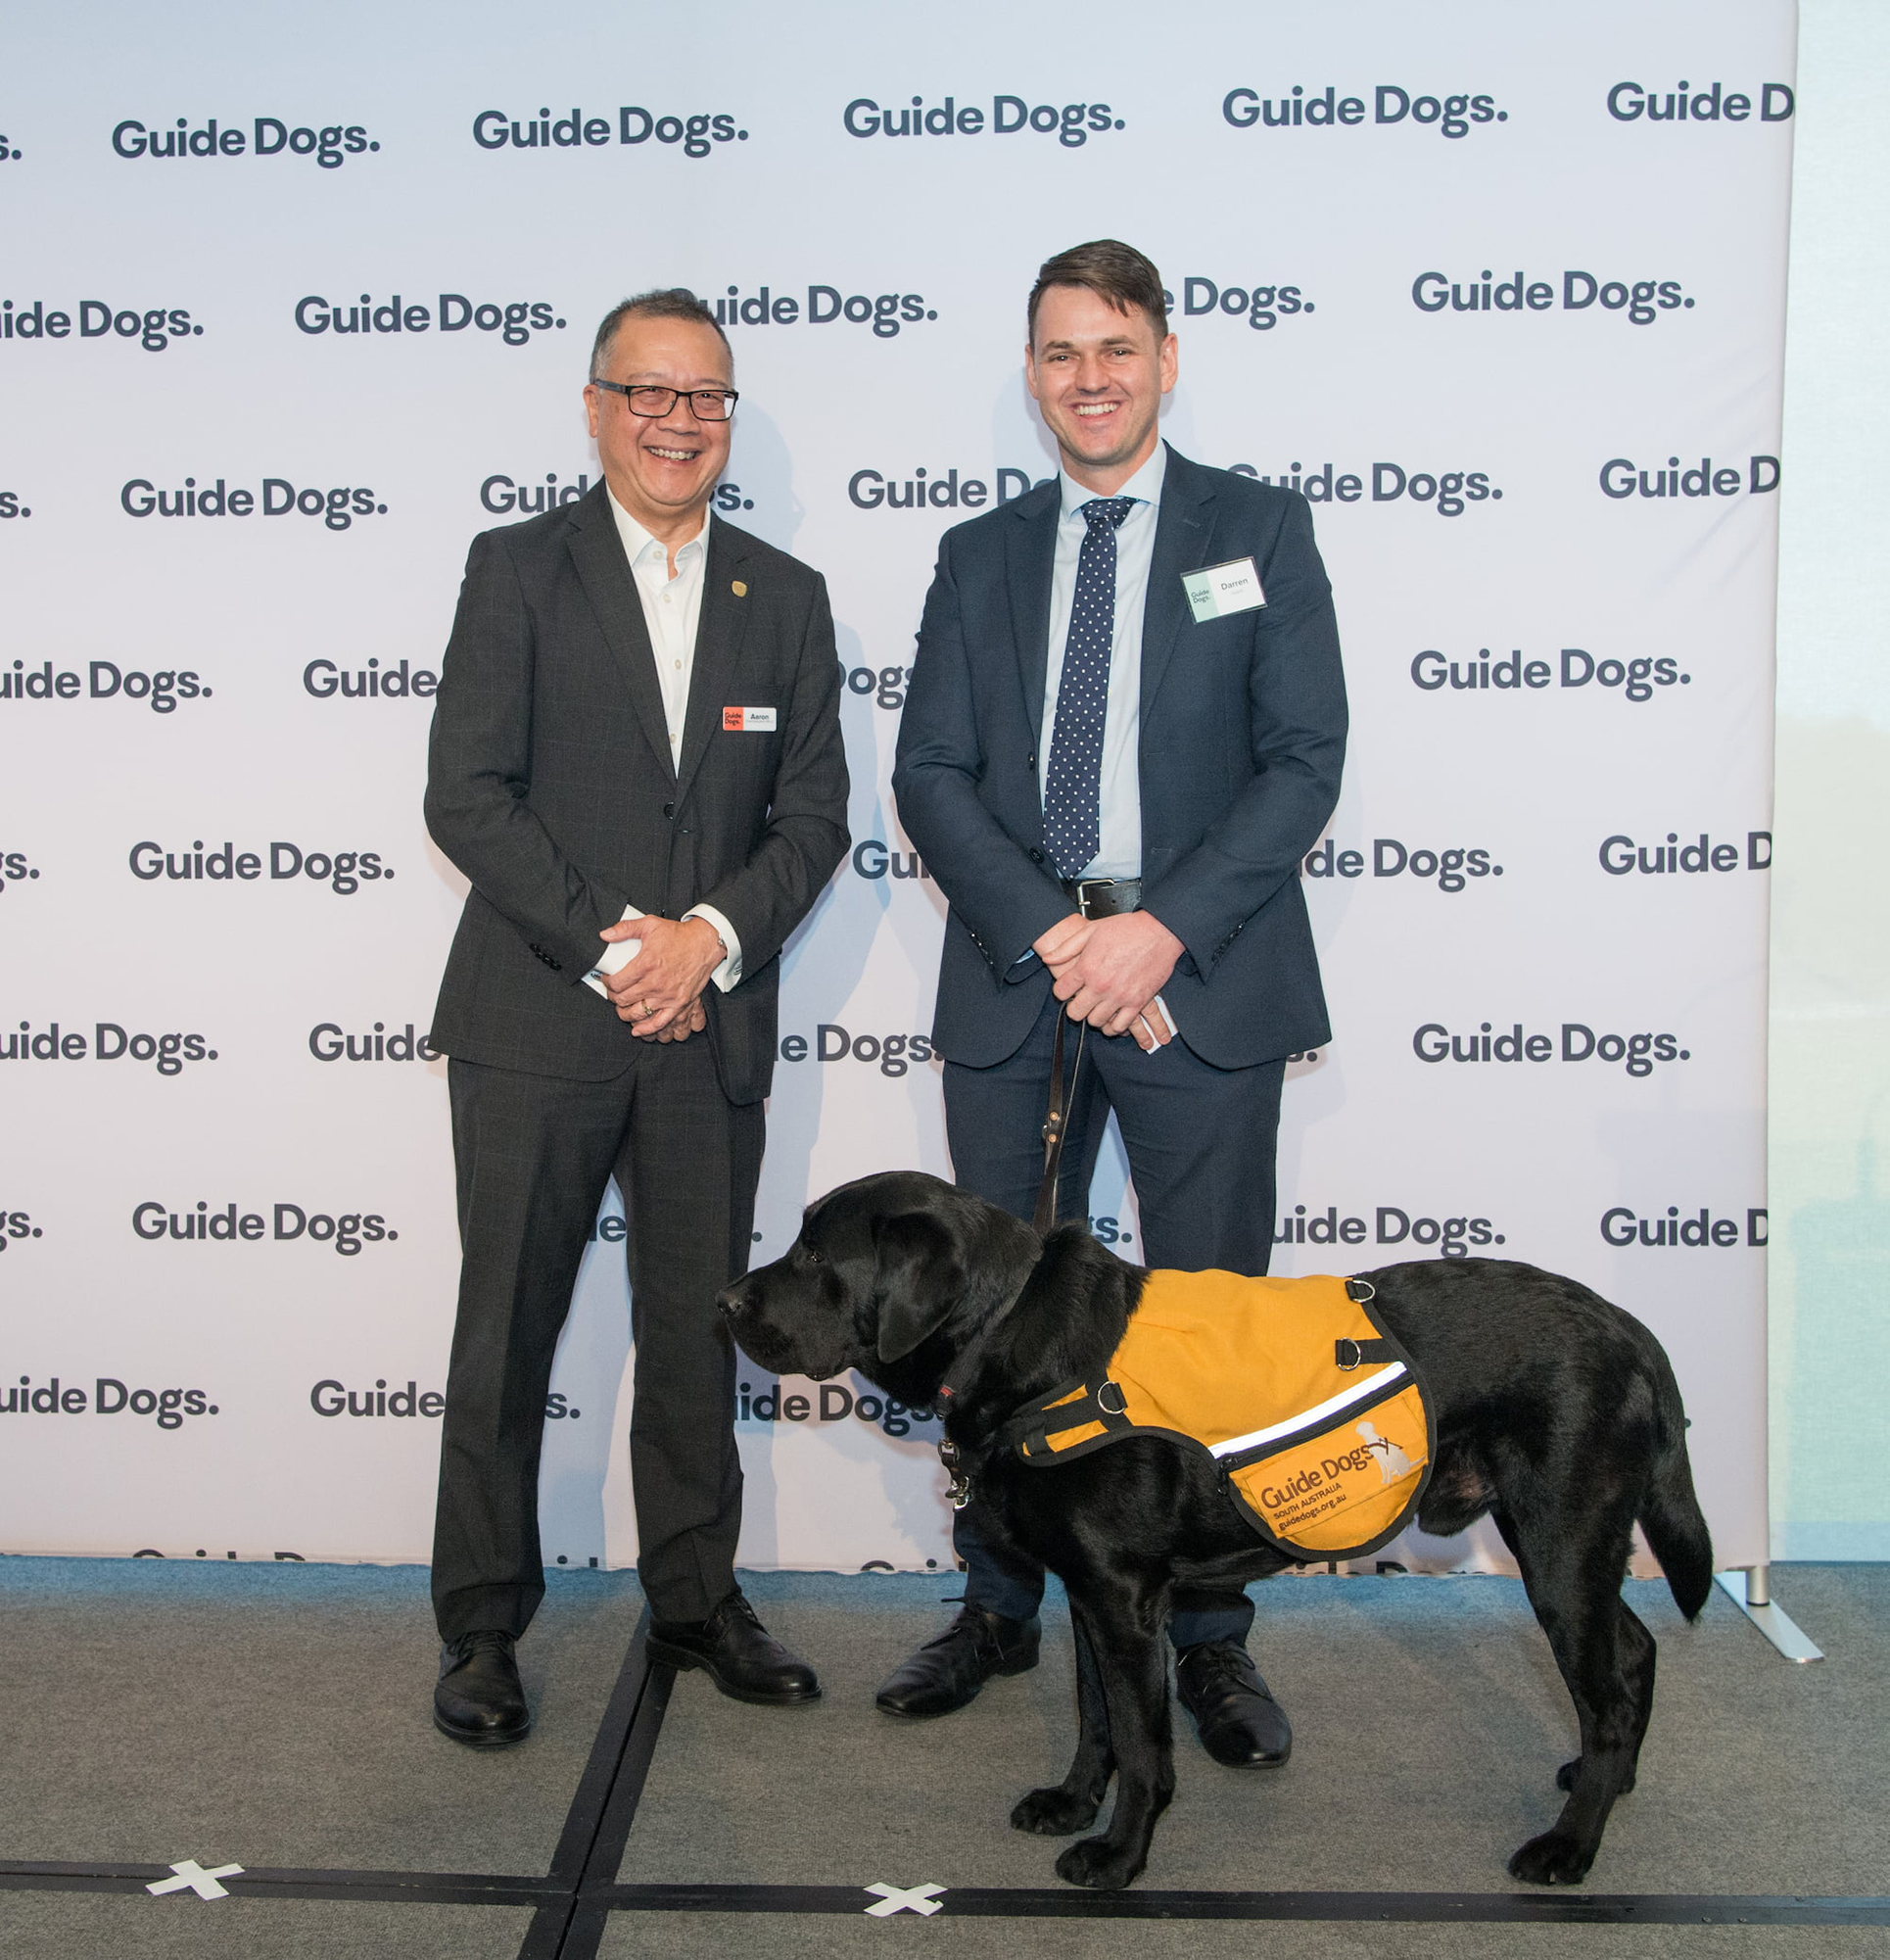 Guide Dogs SA/NT CEO Aaron Chia is standing on stage next to Canine Court Companion Zero, a black Labrador, and his handler Darren.